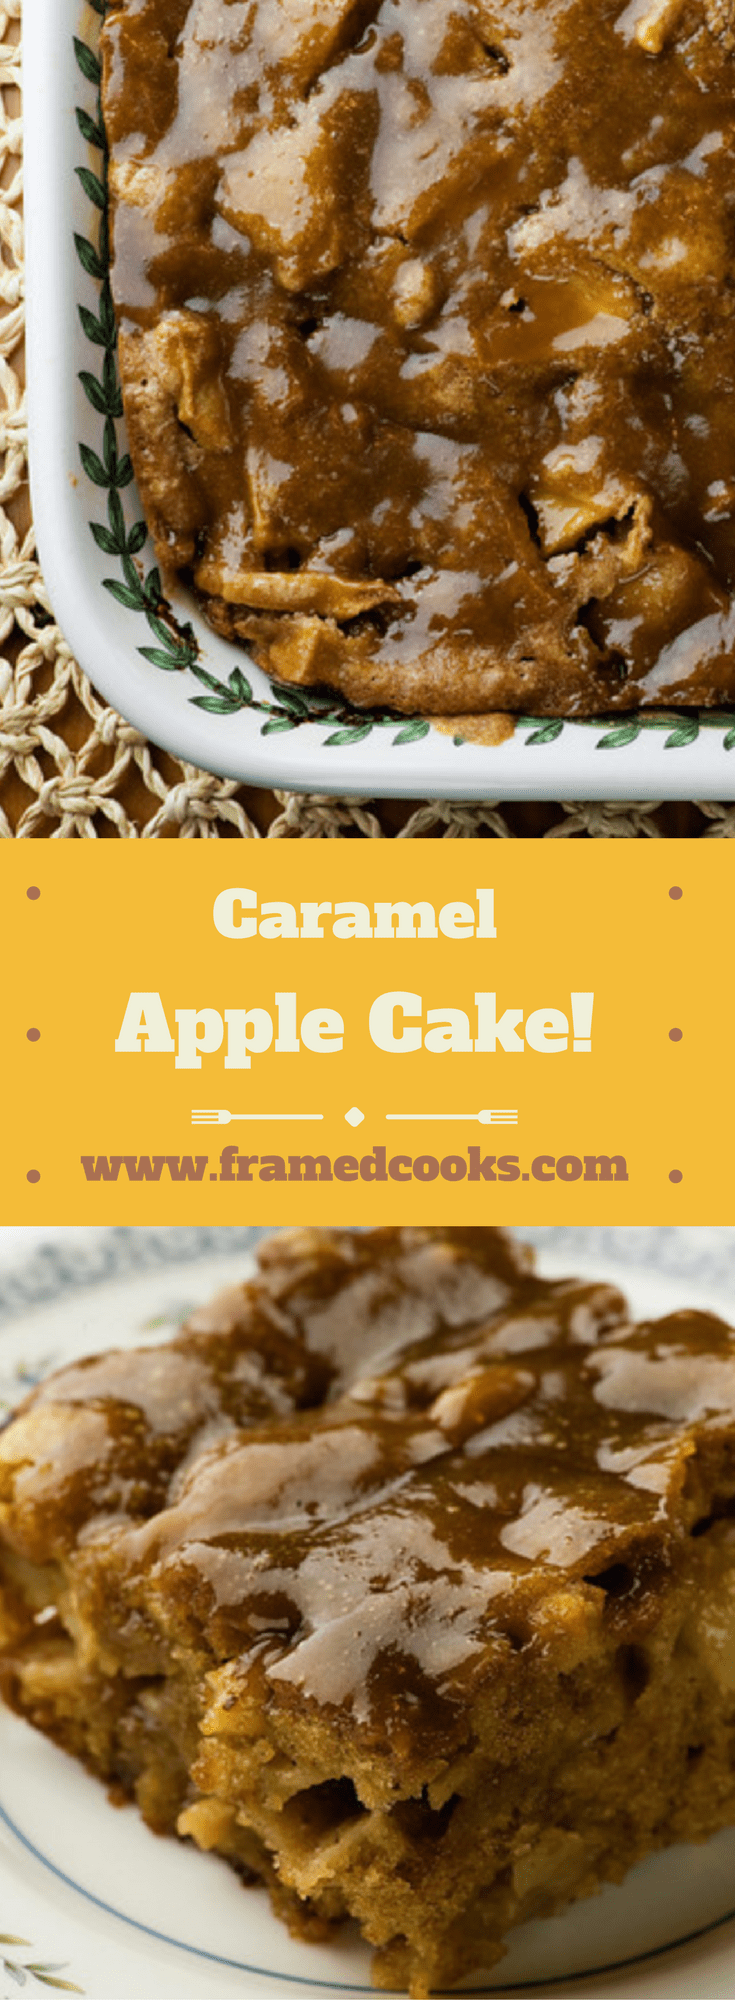 This recipe for caramel apple cake is packed with spicy apples and topped with a decadent caramel glaze.  All your apple cake dreams come true!